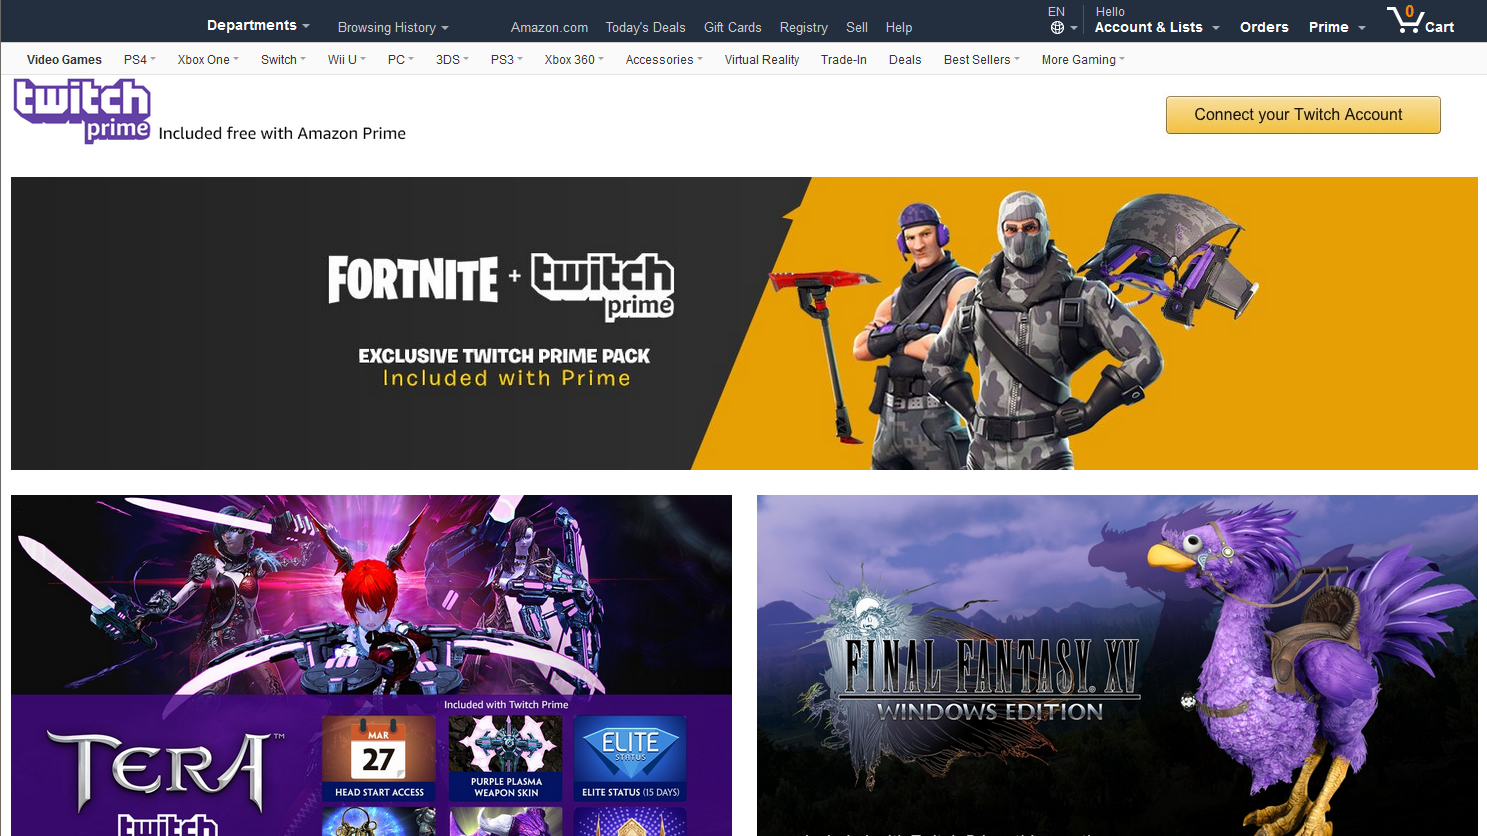 Amazon Twitch Prime how to sign up